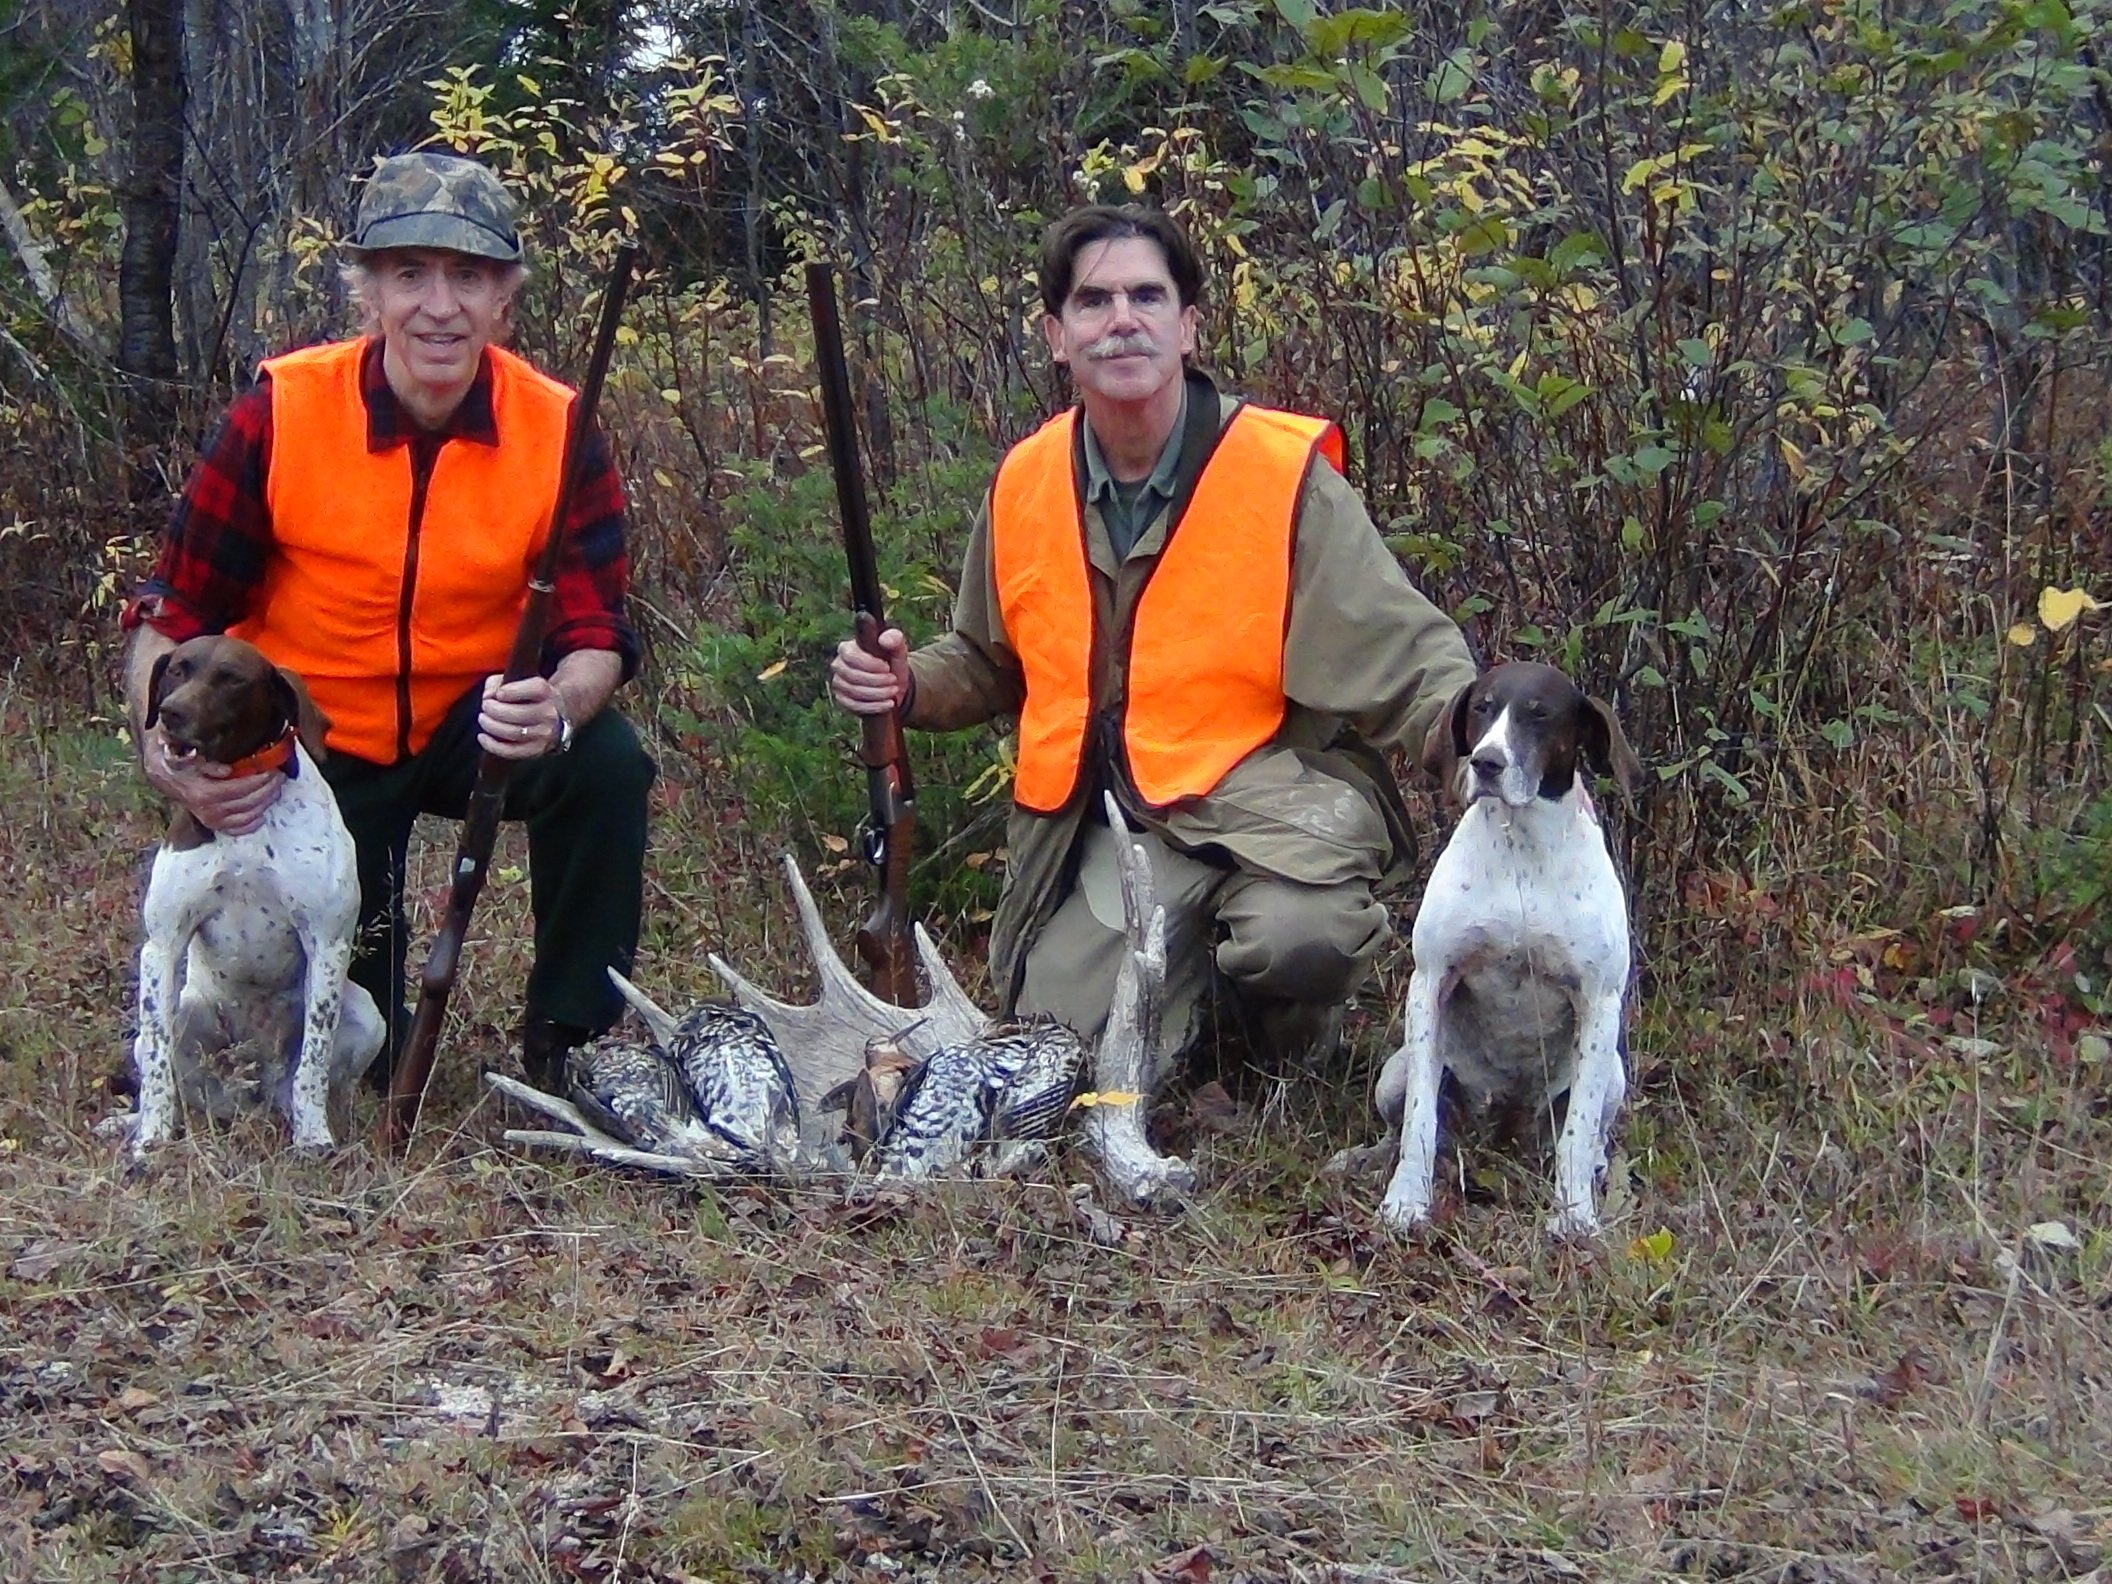 Maine Guided Grouse & Upland Bird Hunting | Allagash Guide ...